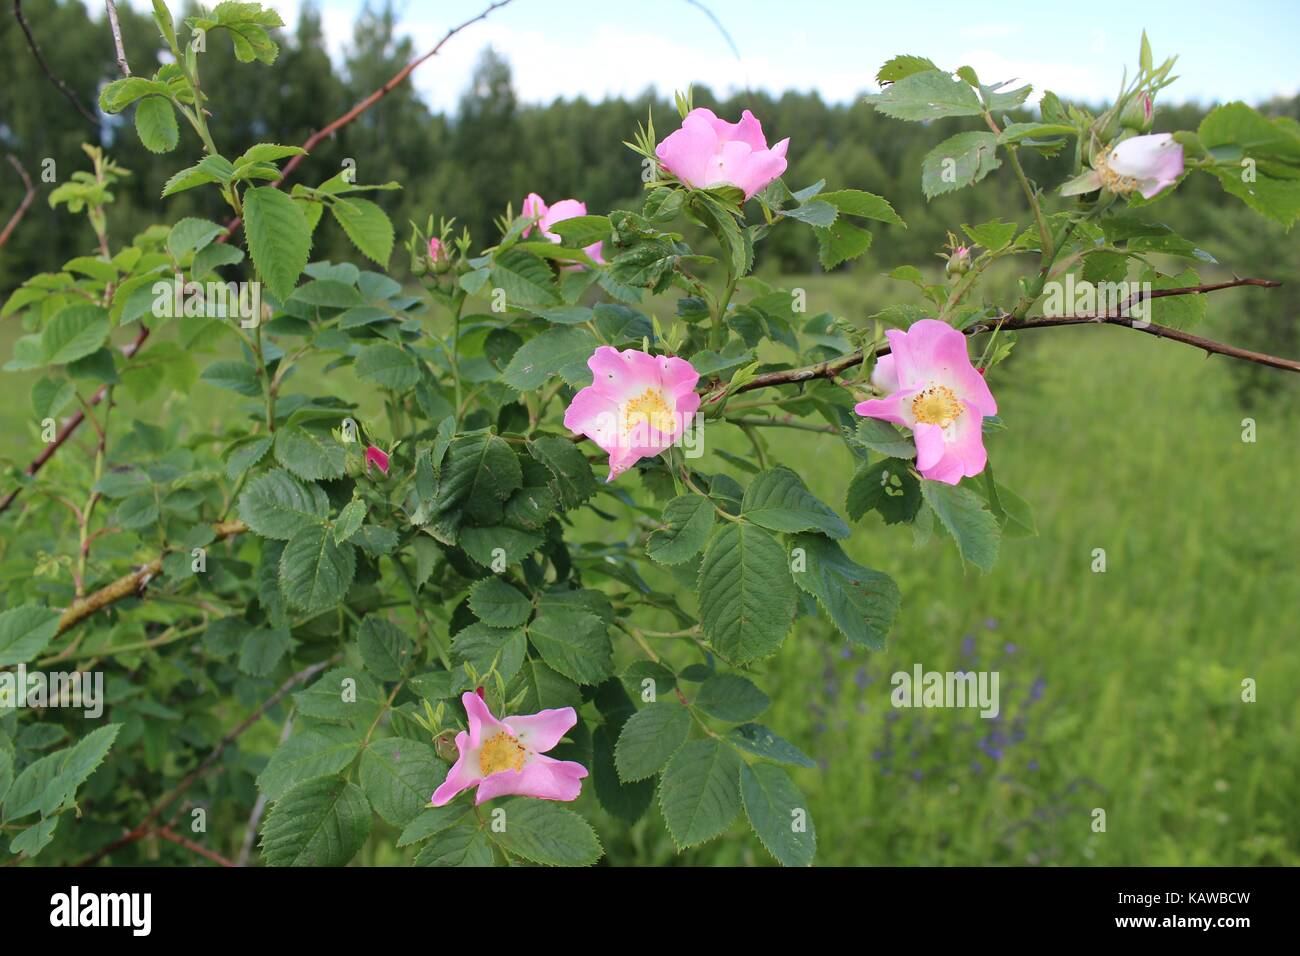 The Wild Rose Dog Rose Bush In The Flowering Stage Large Pink